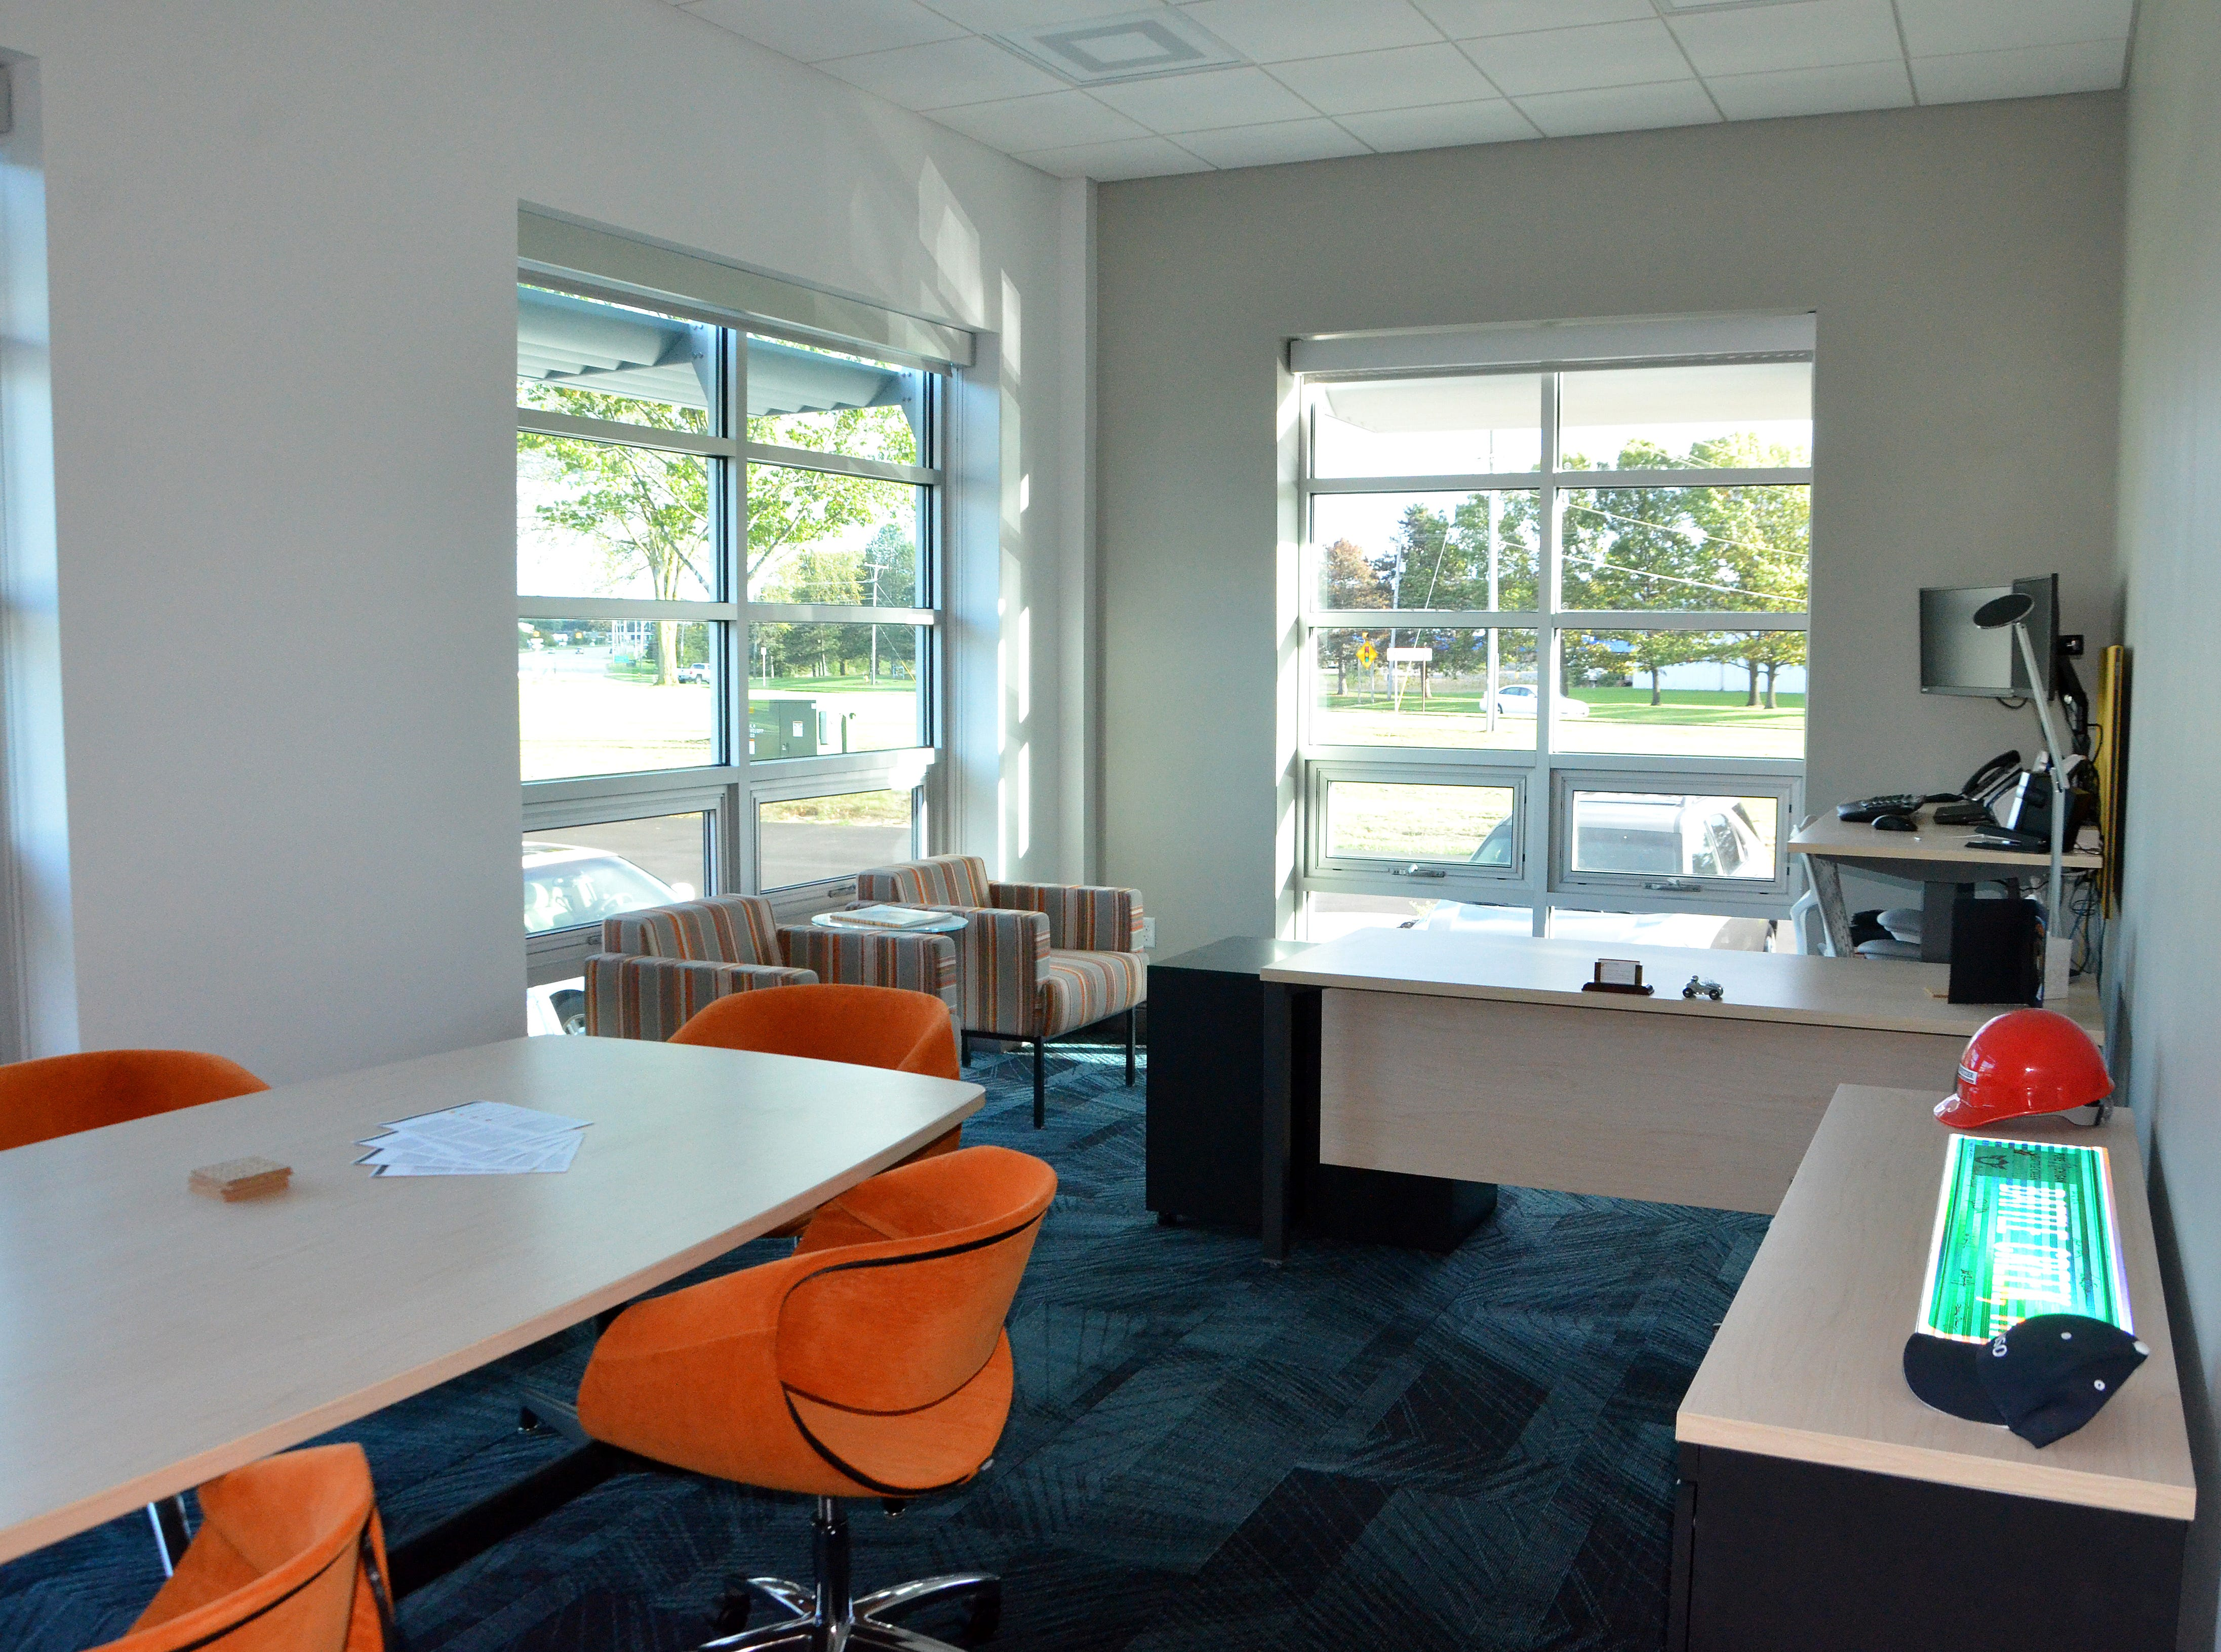 Battle Creek Unlimited's new office space has a white, tan, orange and blue color scheme.